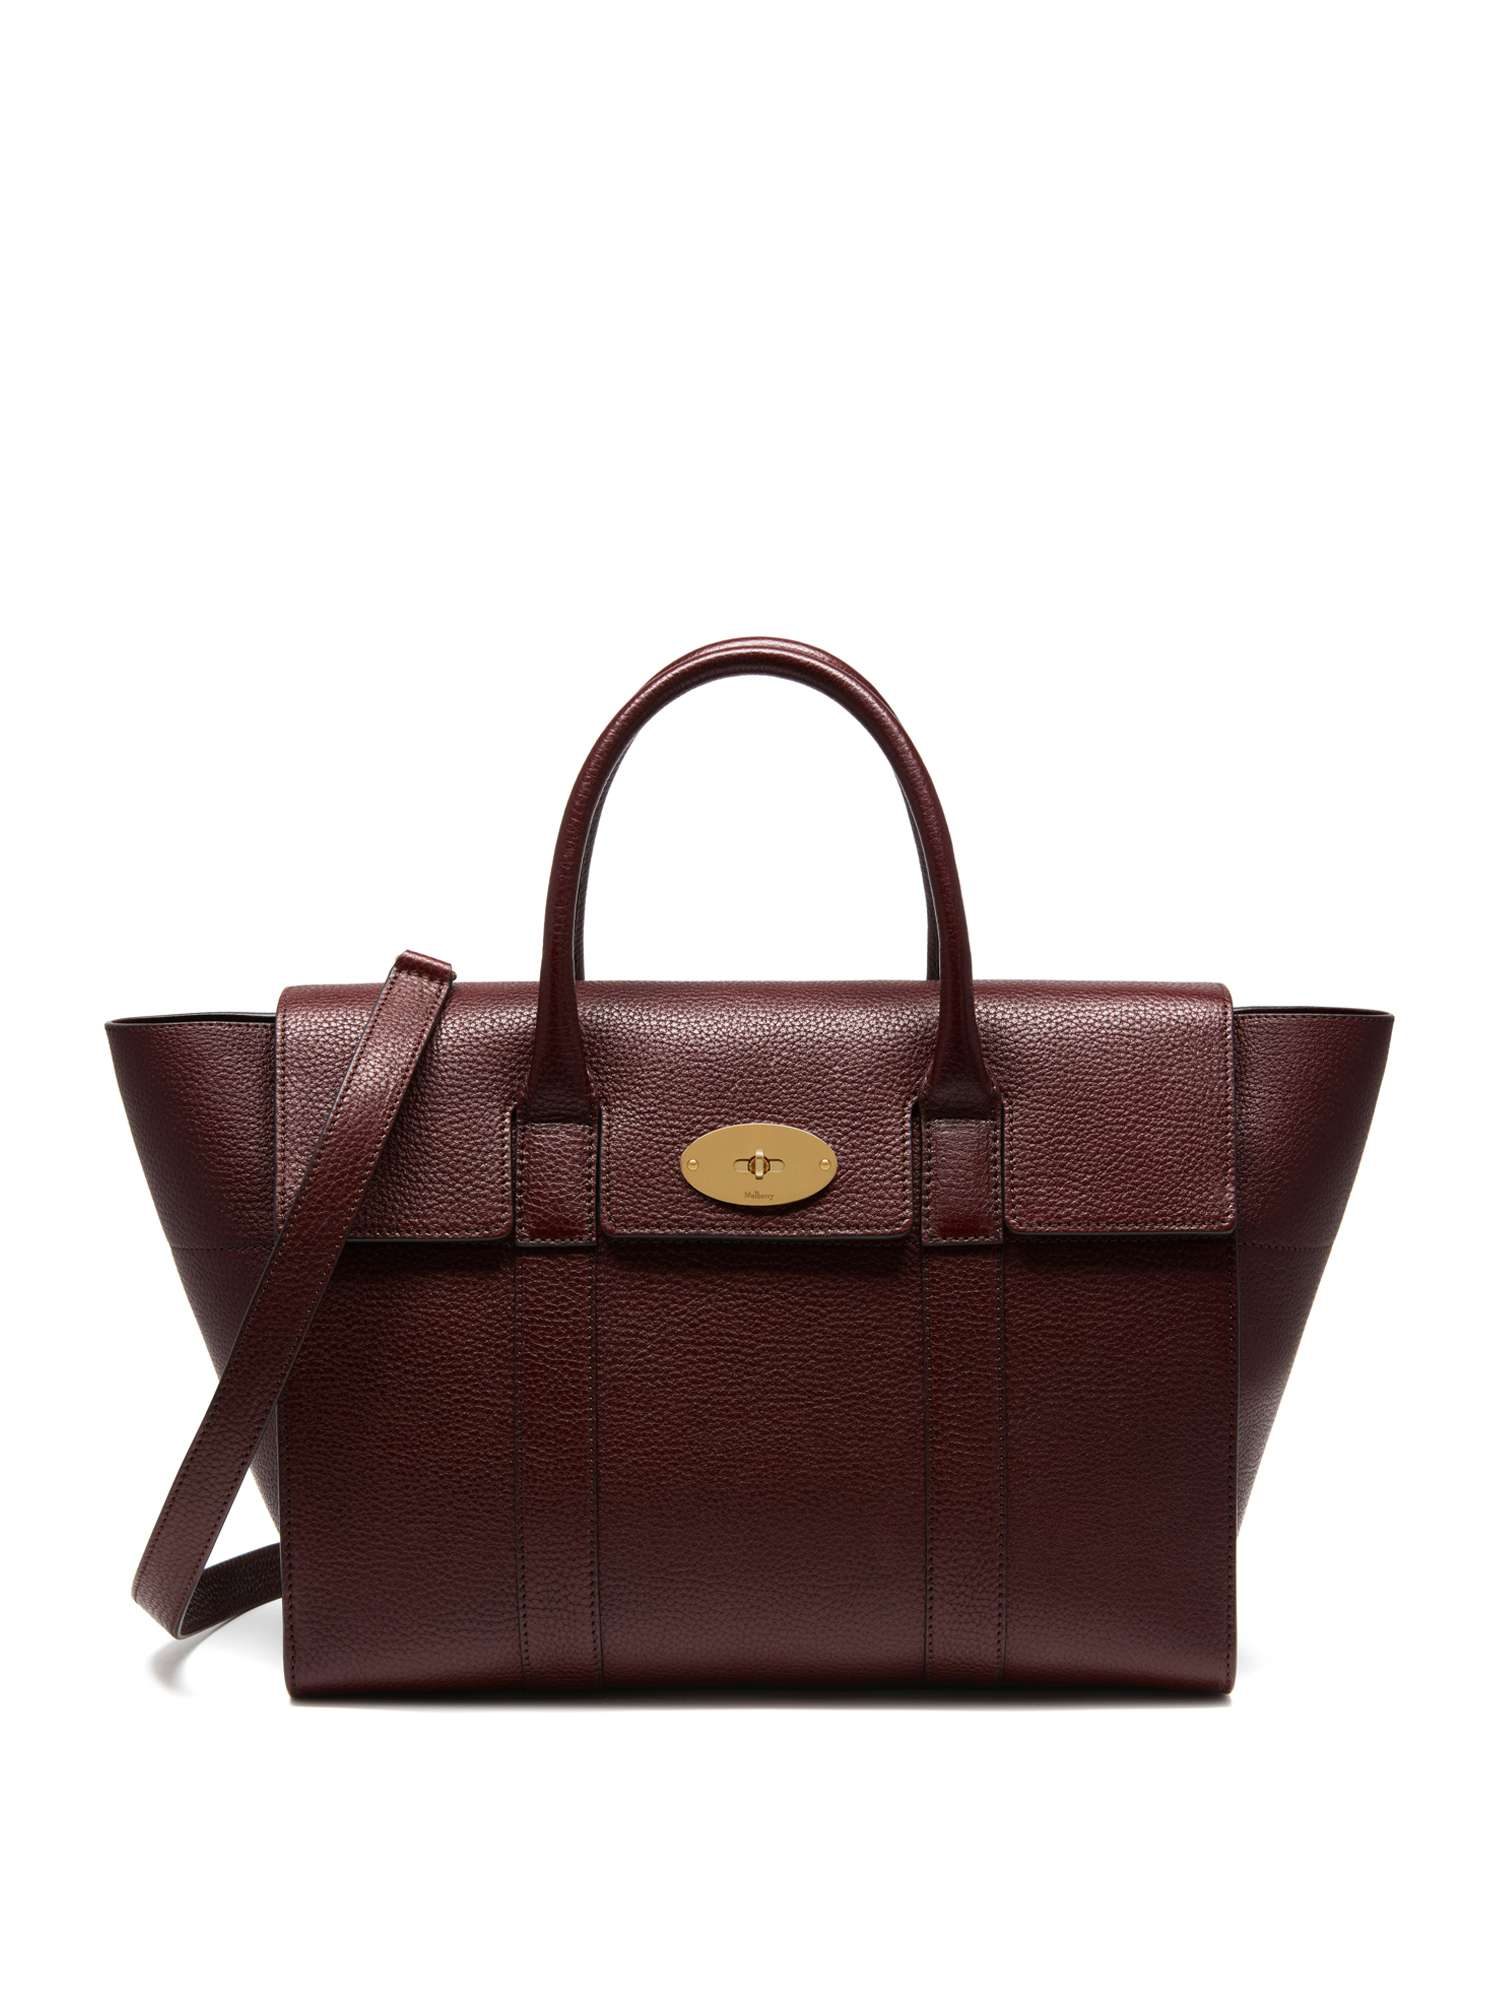 9194b50231 ... france mulberry bayswater bag with strap bb7da 4d035